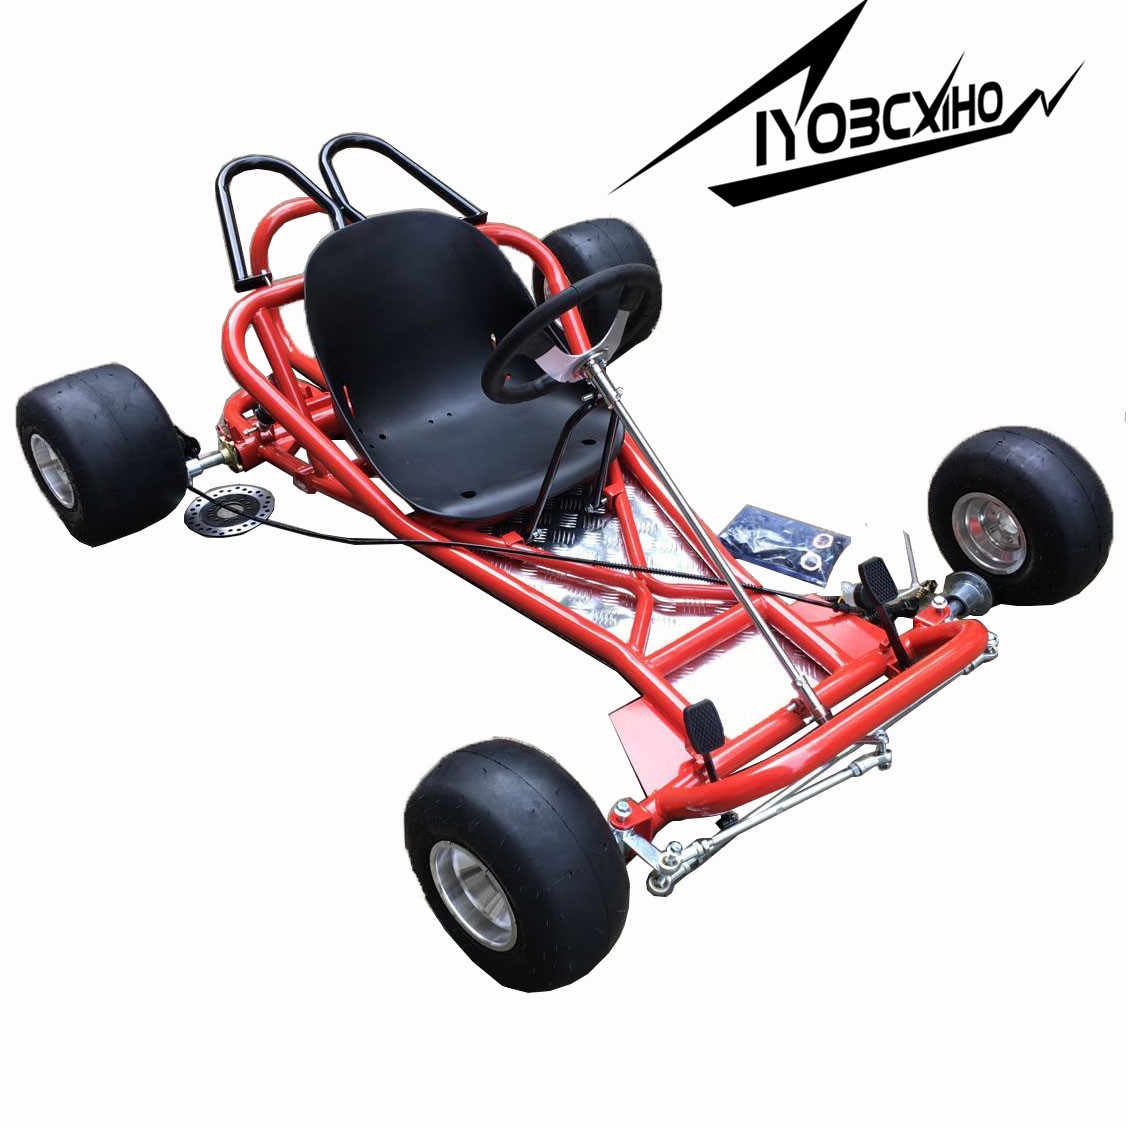 Whole Body Frame Of 168cc Go Kart Utv Buggy Total Set With Front Steering System Rear Axle Rear Brake Including Wheels And Seat Atv Parts Accessories Aliexpress